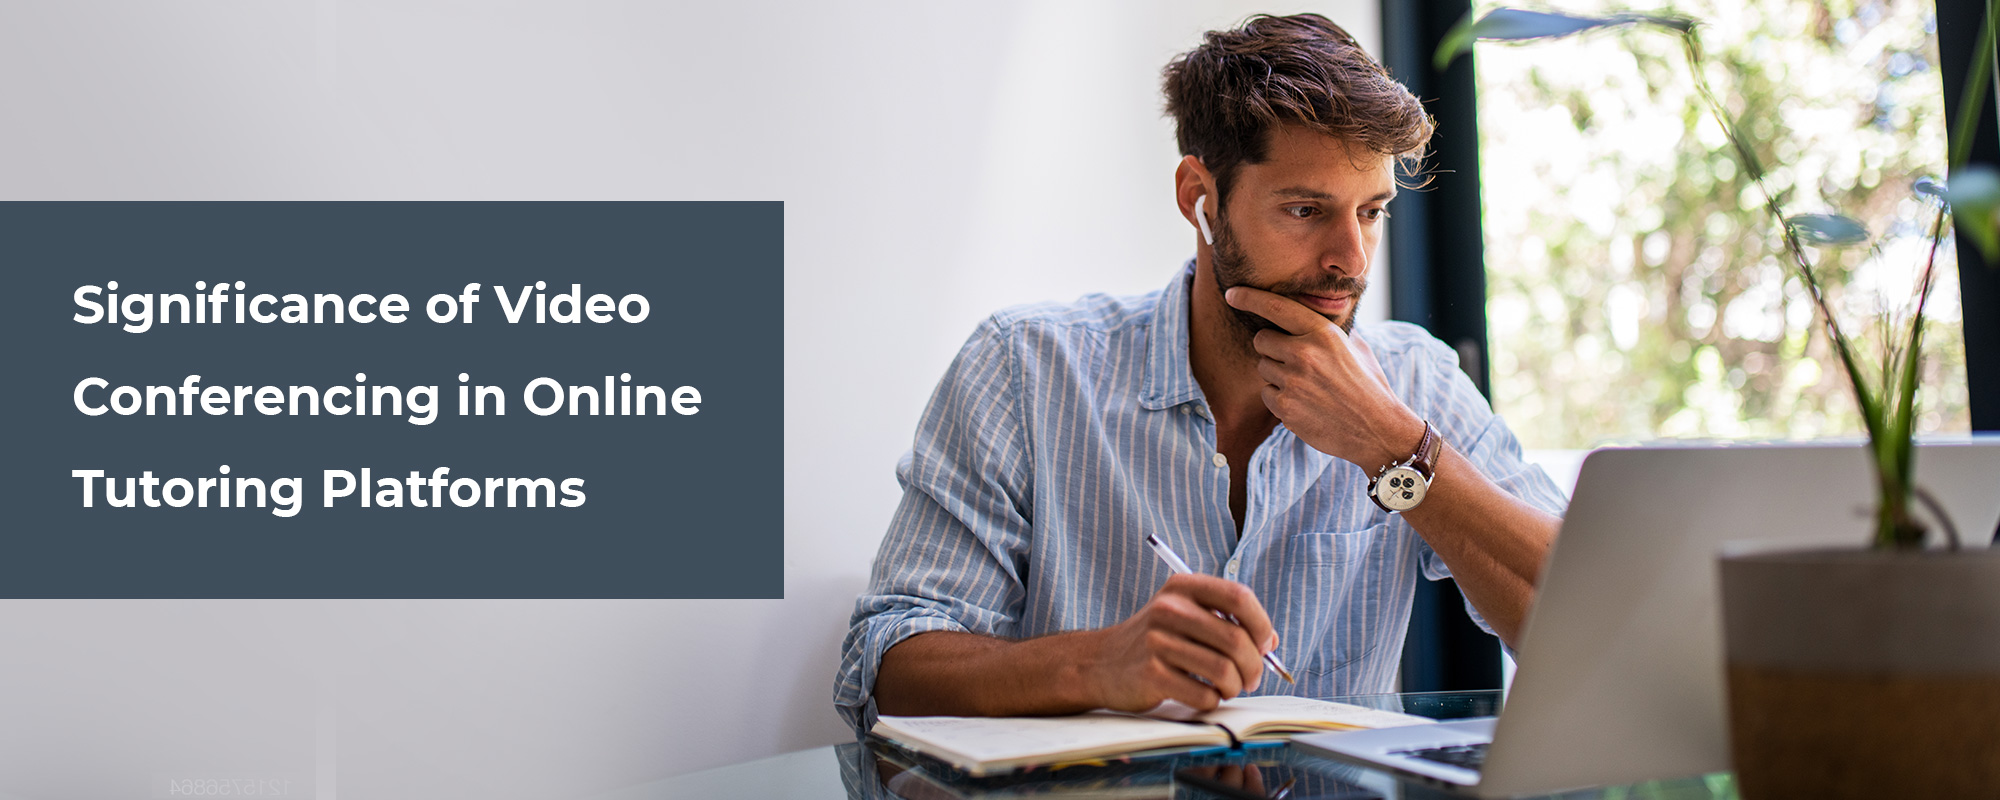 Why Launch an Online Tutoring Platform With Video Conferencing Functionality?